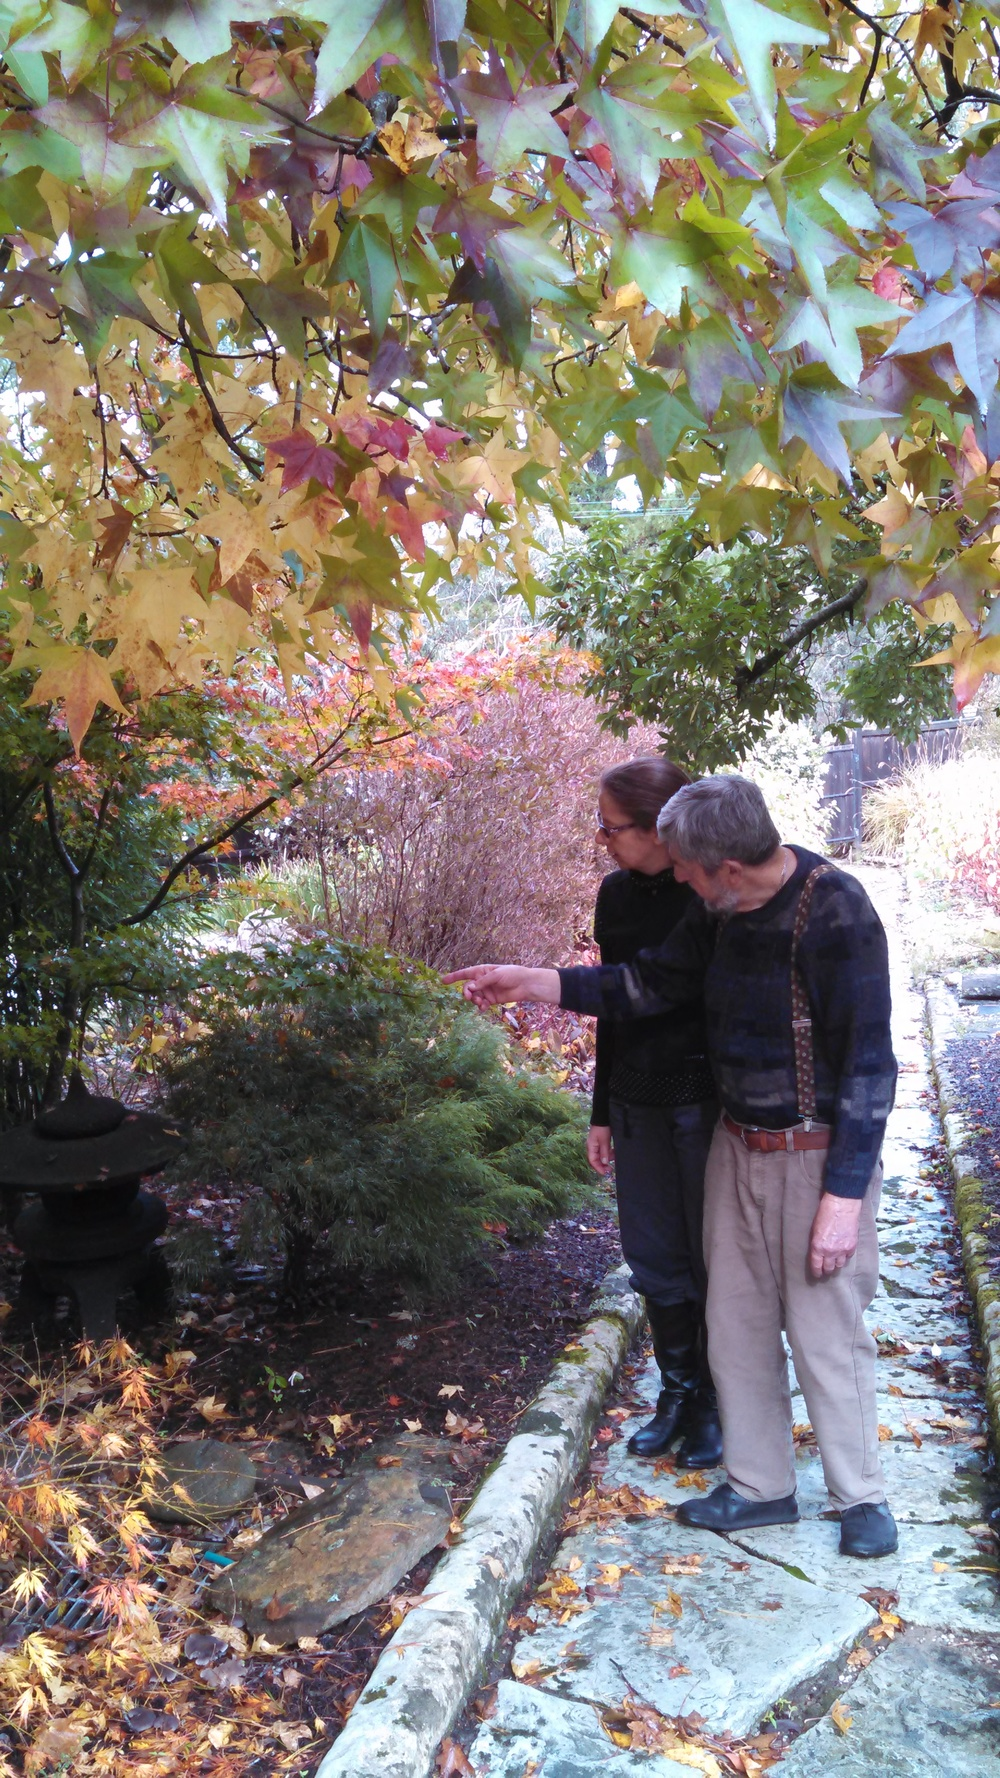 Grospapi and Claudi strolling the gardens- taking in the autumn colors. (remember- April is October down under!)